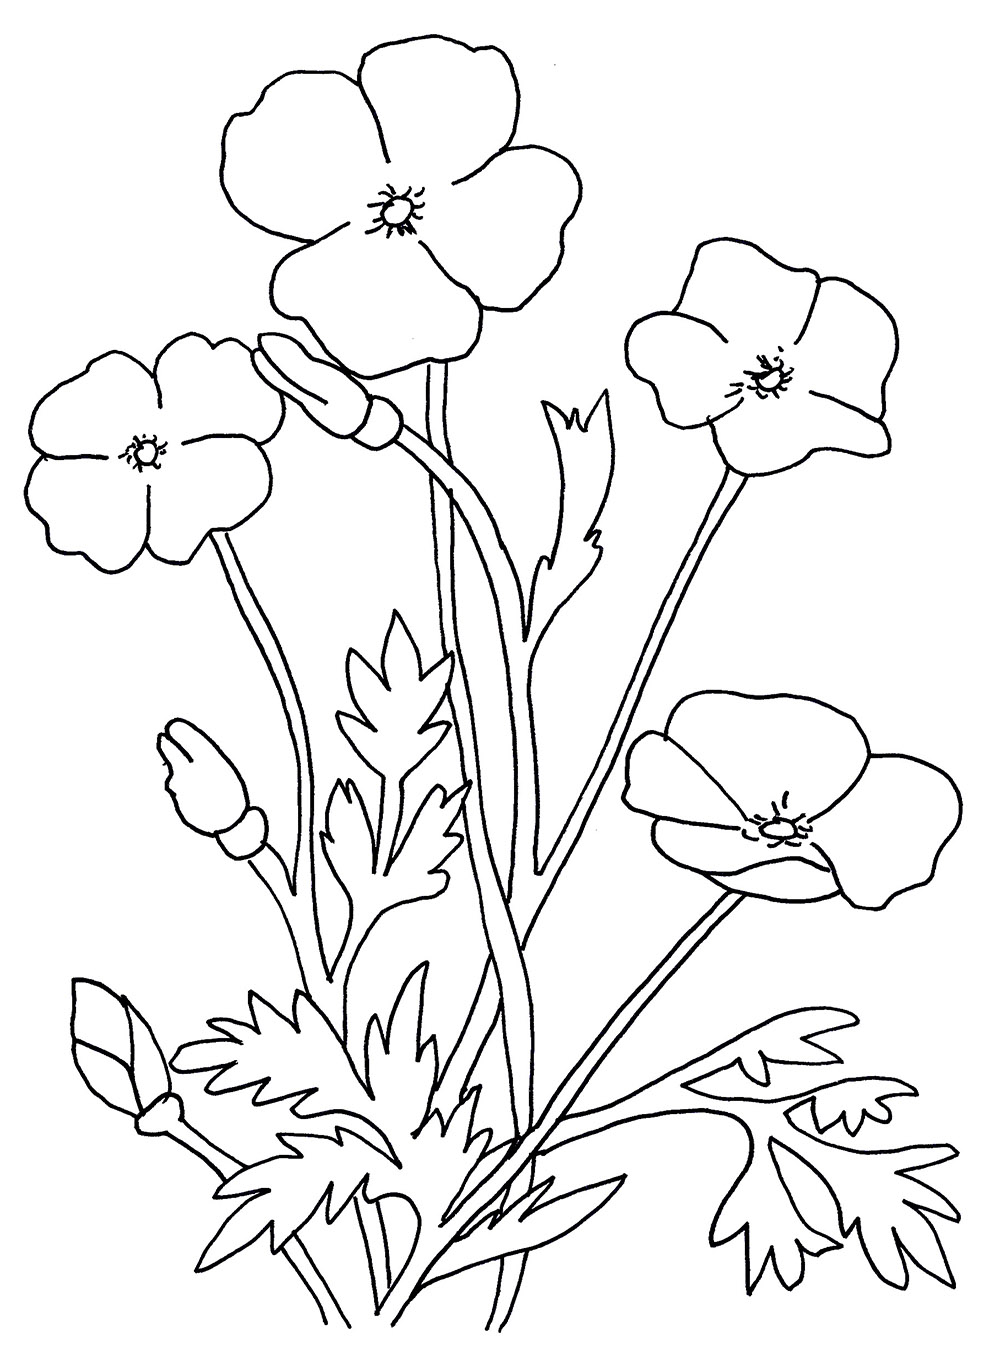 image relating to Poppies Printable called Poppies Coloring Webpages - Most straightforward Coloring Internet pages For Youngsters